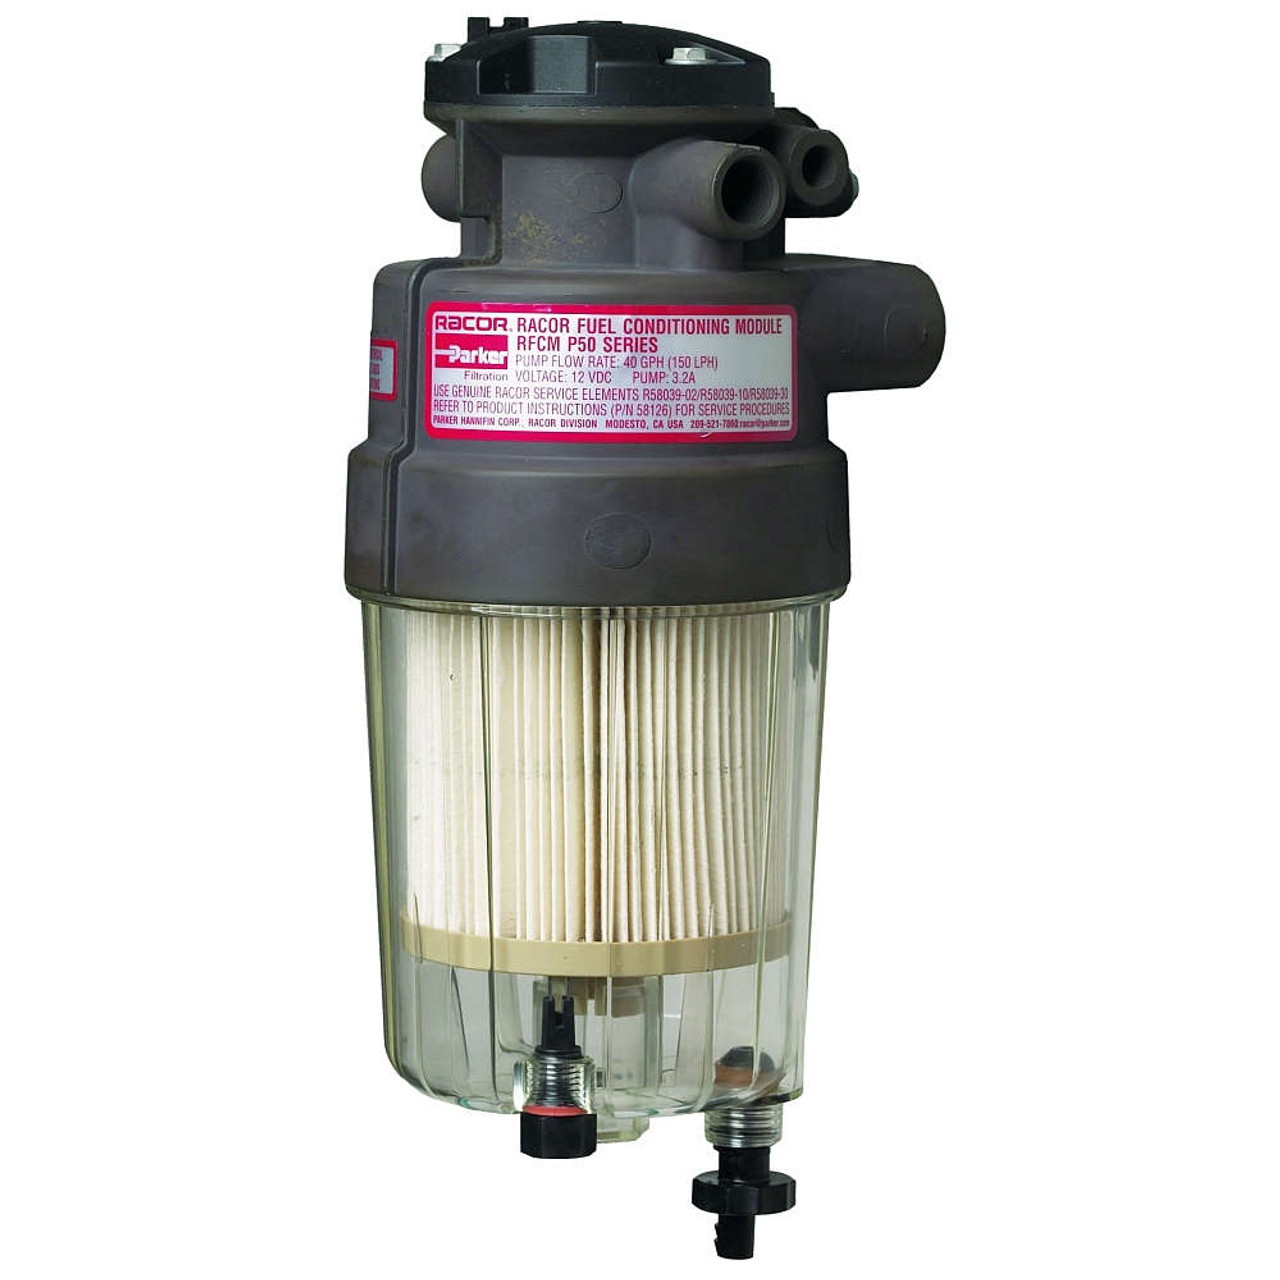 racor p series 50 gph diesel integrated fuel filter water separator Fuel Filter Diagram racor p series 50 gph diesel integrated fuel filter water separator p5 filter assembly 30 micron john m ellsworth co inc